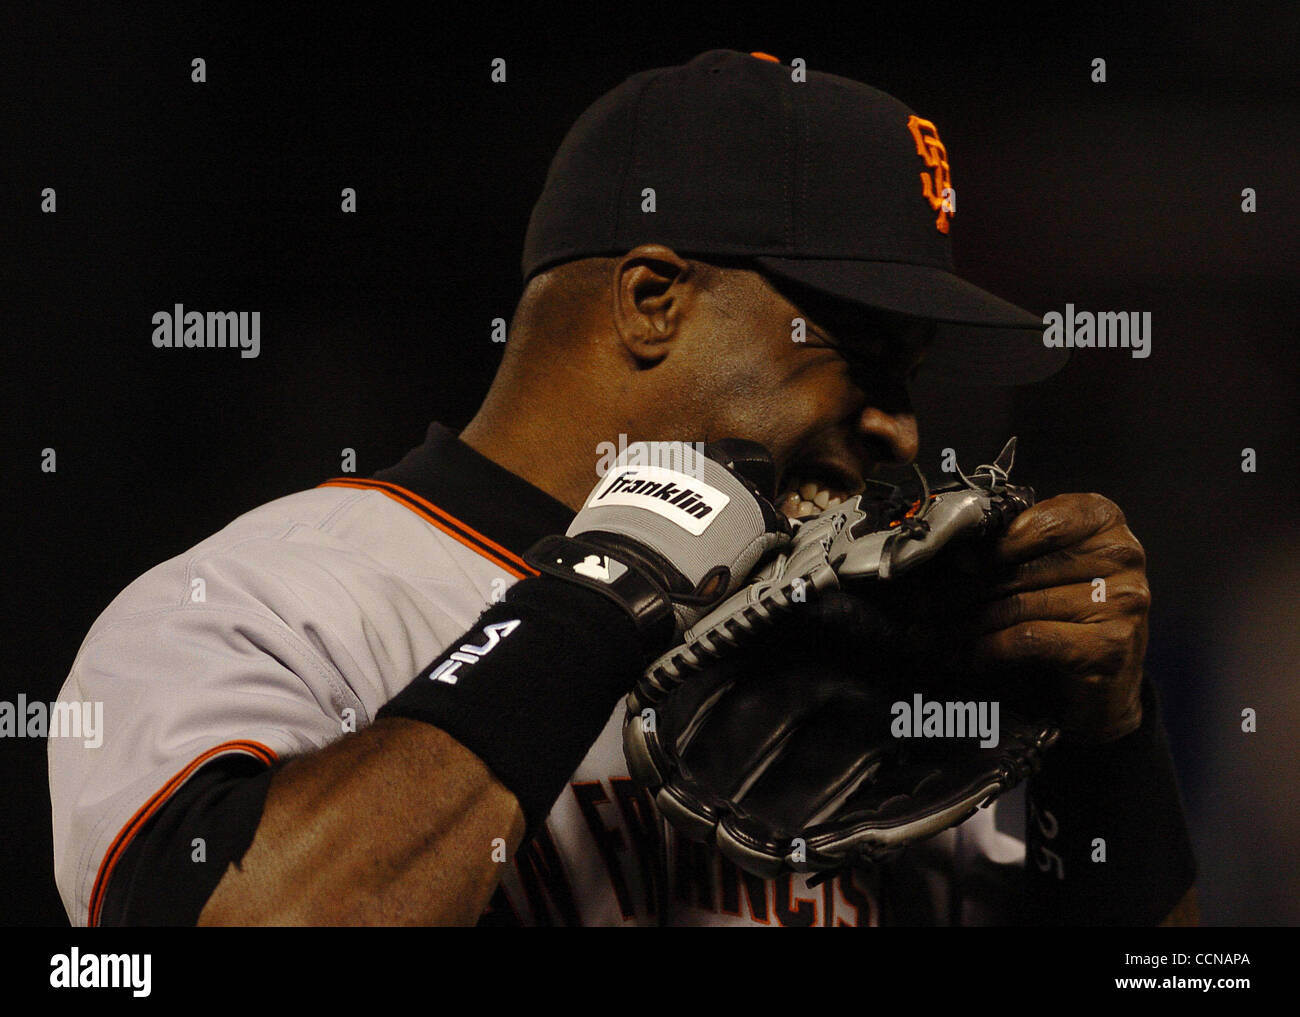 Barry Bonds Glove